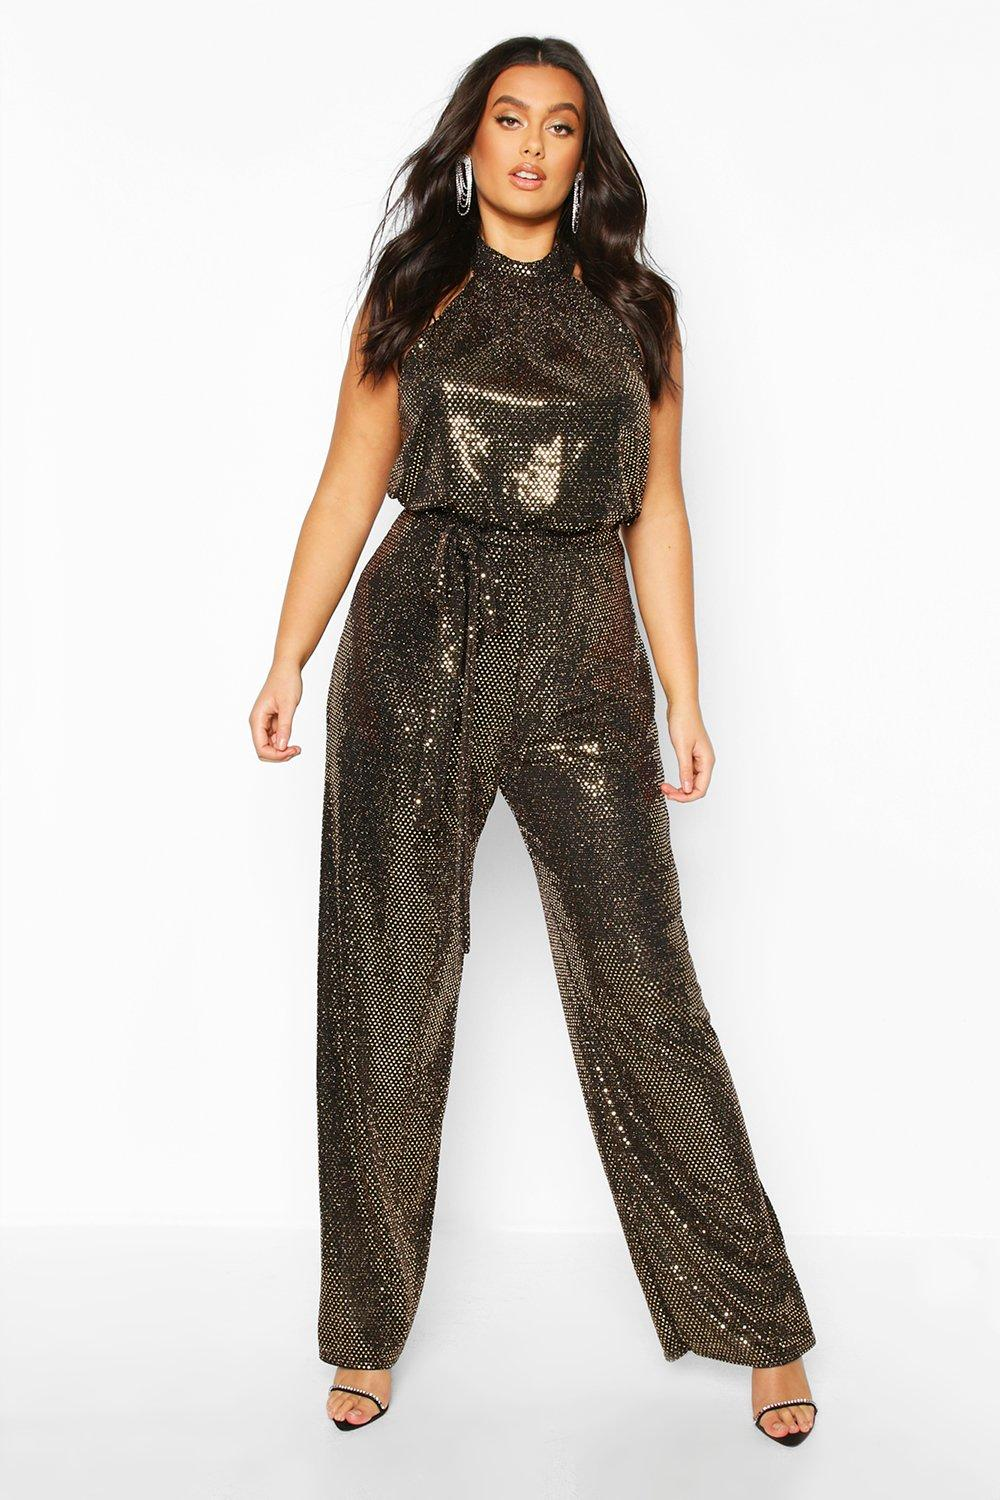 70s Disco Fashion: Disco Clothes, Outfits for Girls Womens Plus Metallic Sequin Wide Leg Belted Jumpsuit - Metallics - 16 $30.00 AT vintagedancer.com